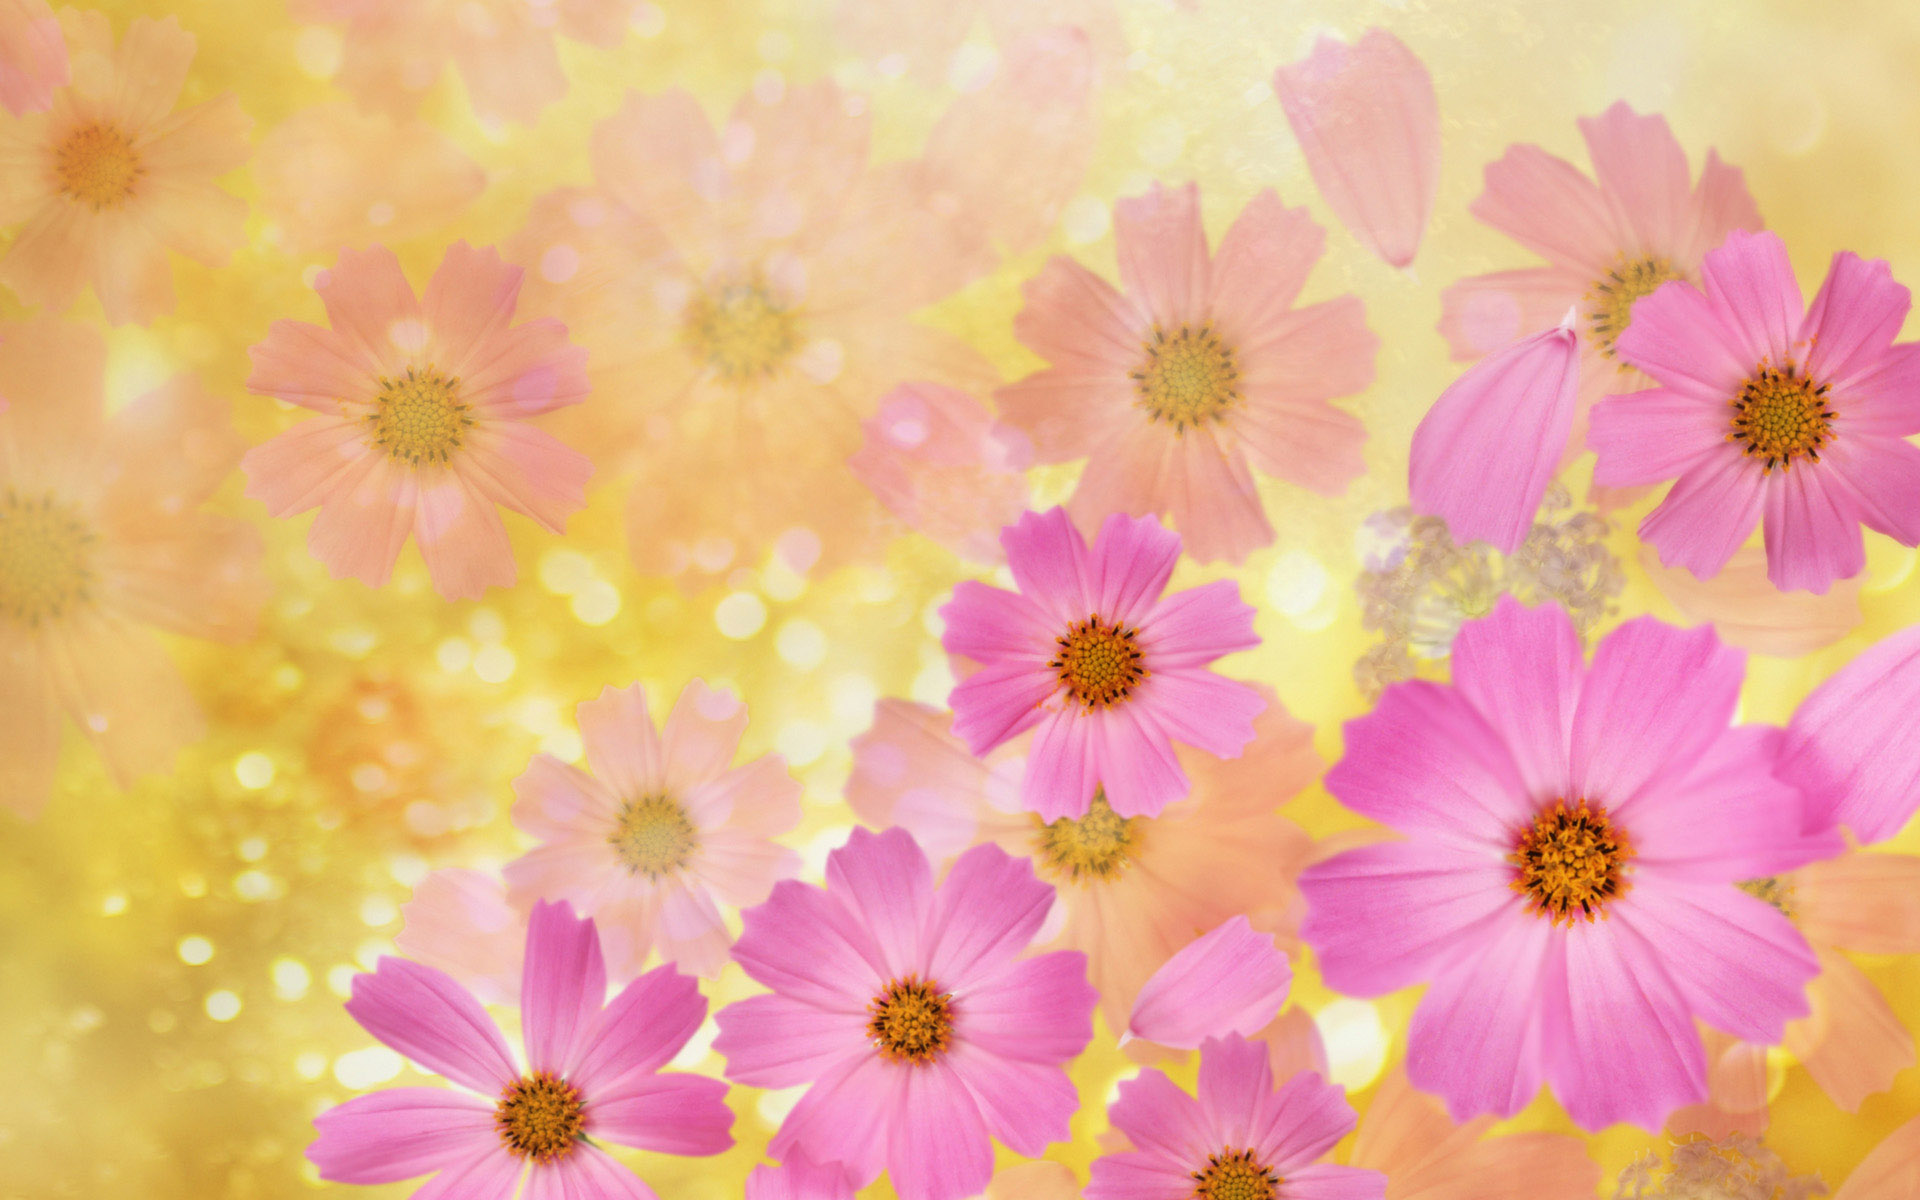 Free wallpaper backgrounds flowers clip art download flower backgrounds | Cosmos flowers Wallpaper | High Quality ... clip art download